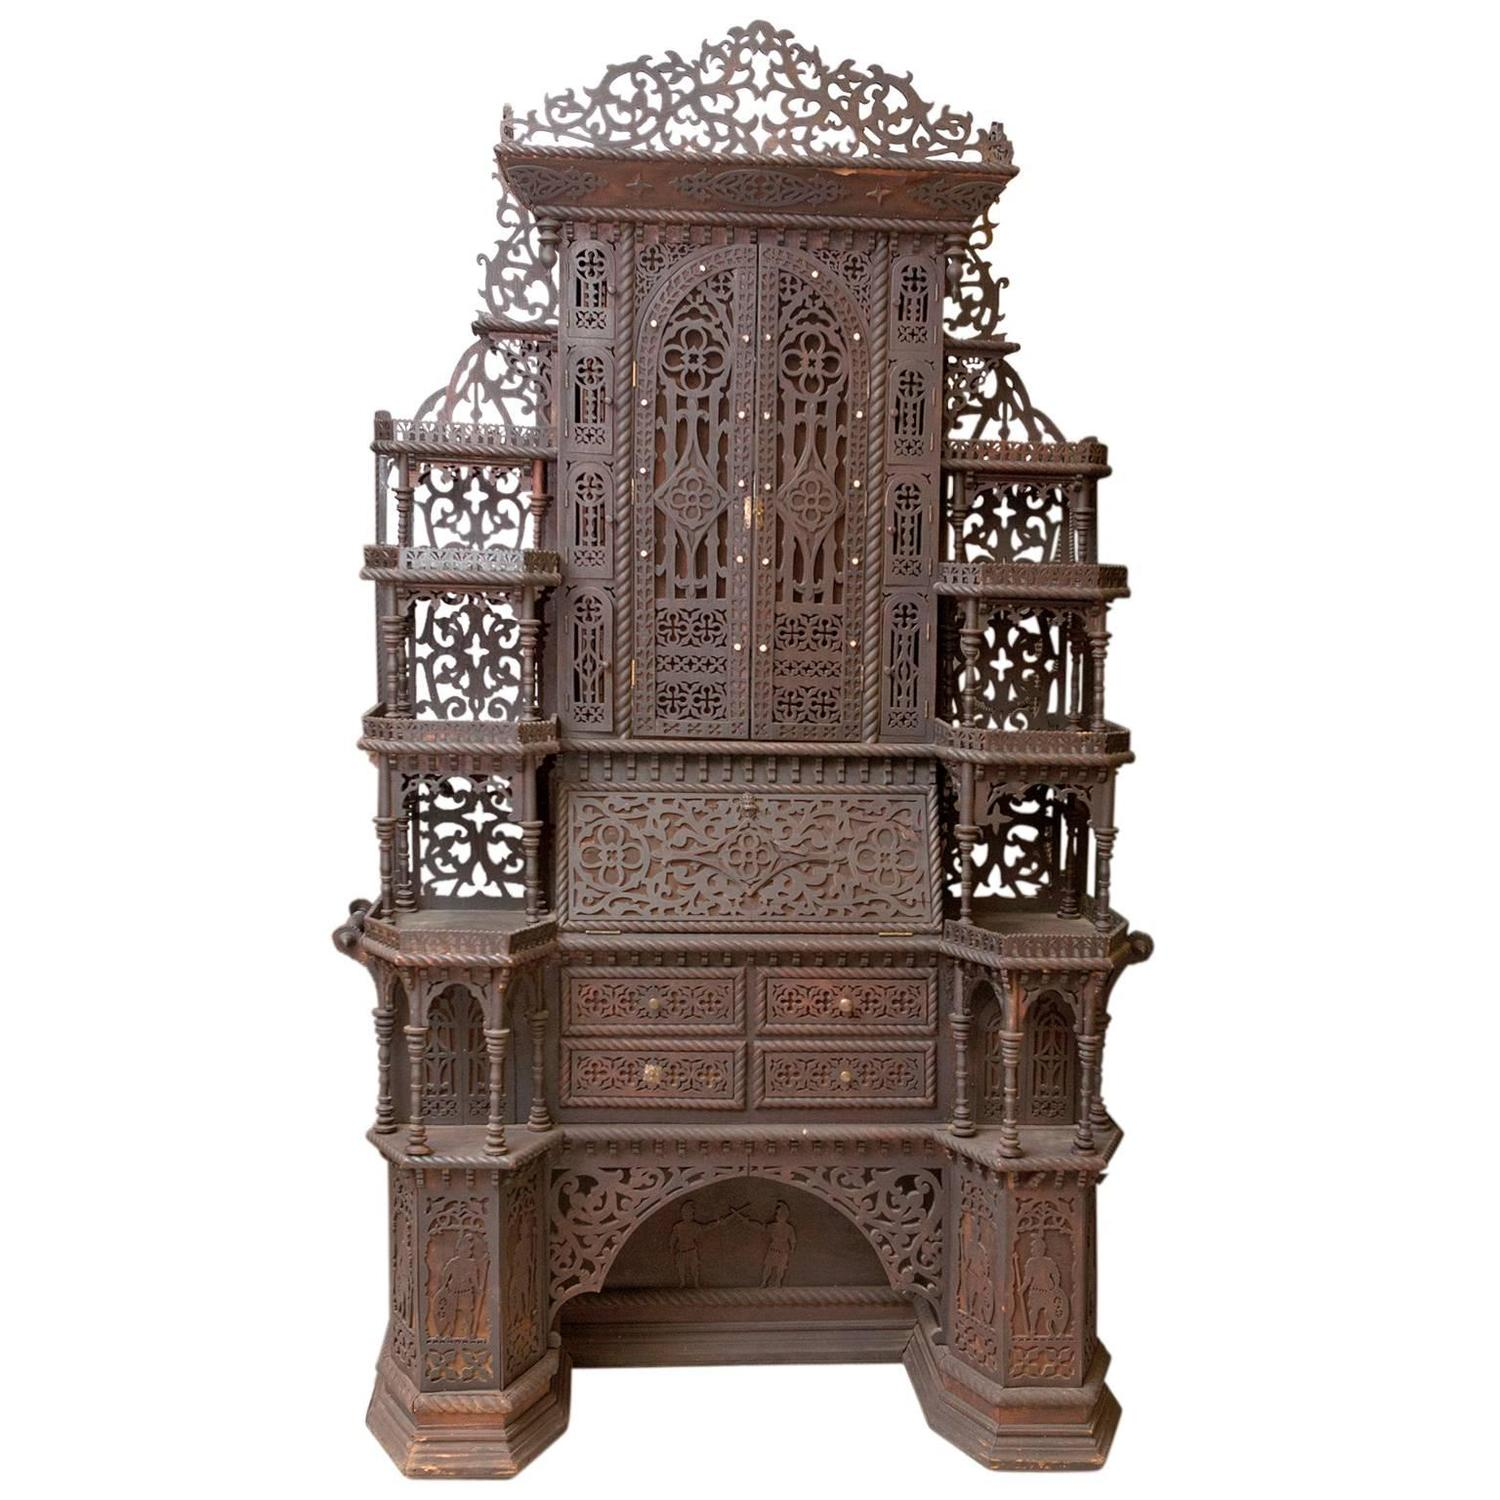 antique fretwork folk art eterger or tag re with dressing table for sale at 1stdibs. Black Bedroom Furniture Sets. Home Design Ideas